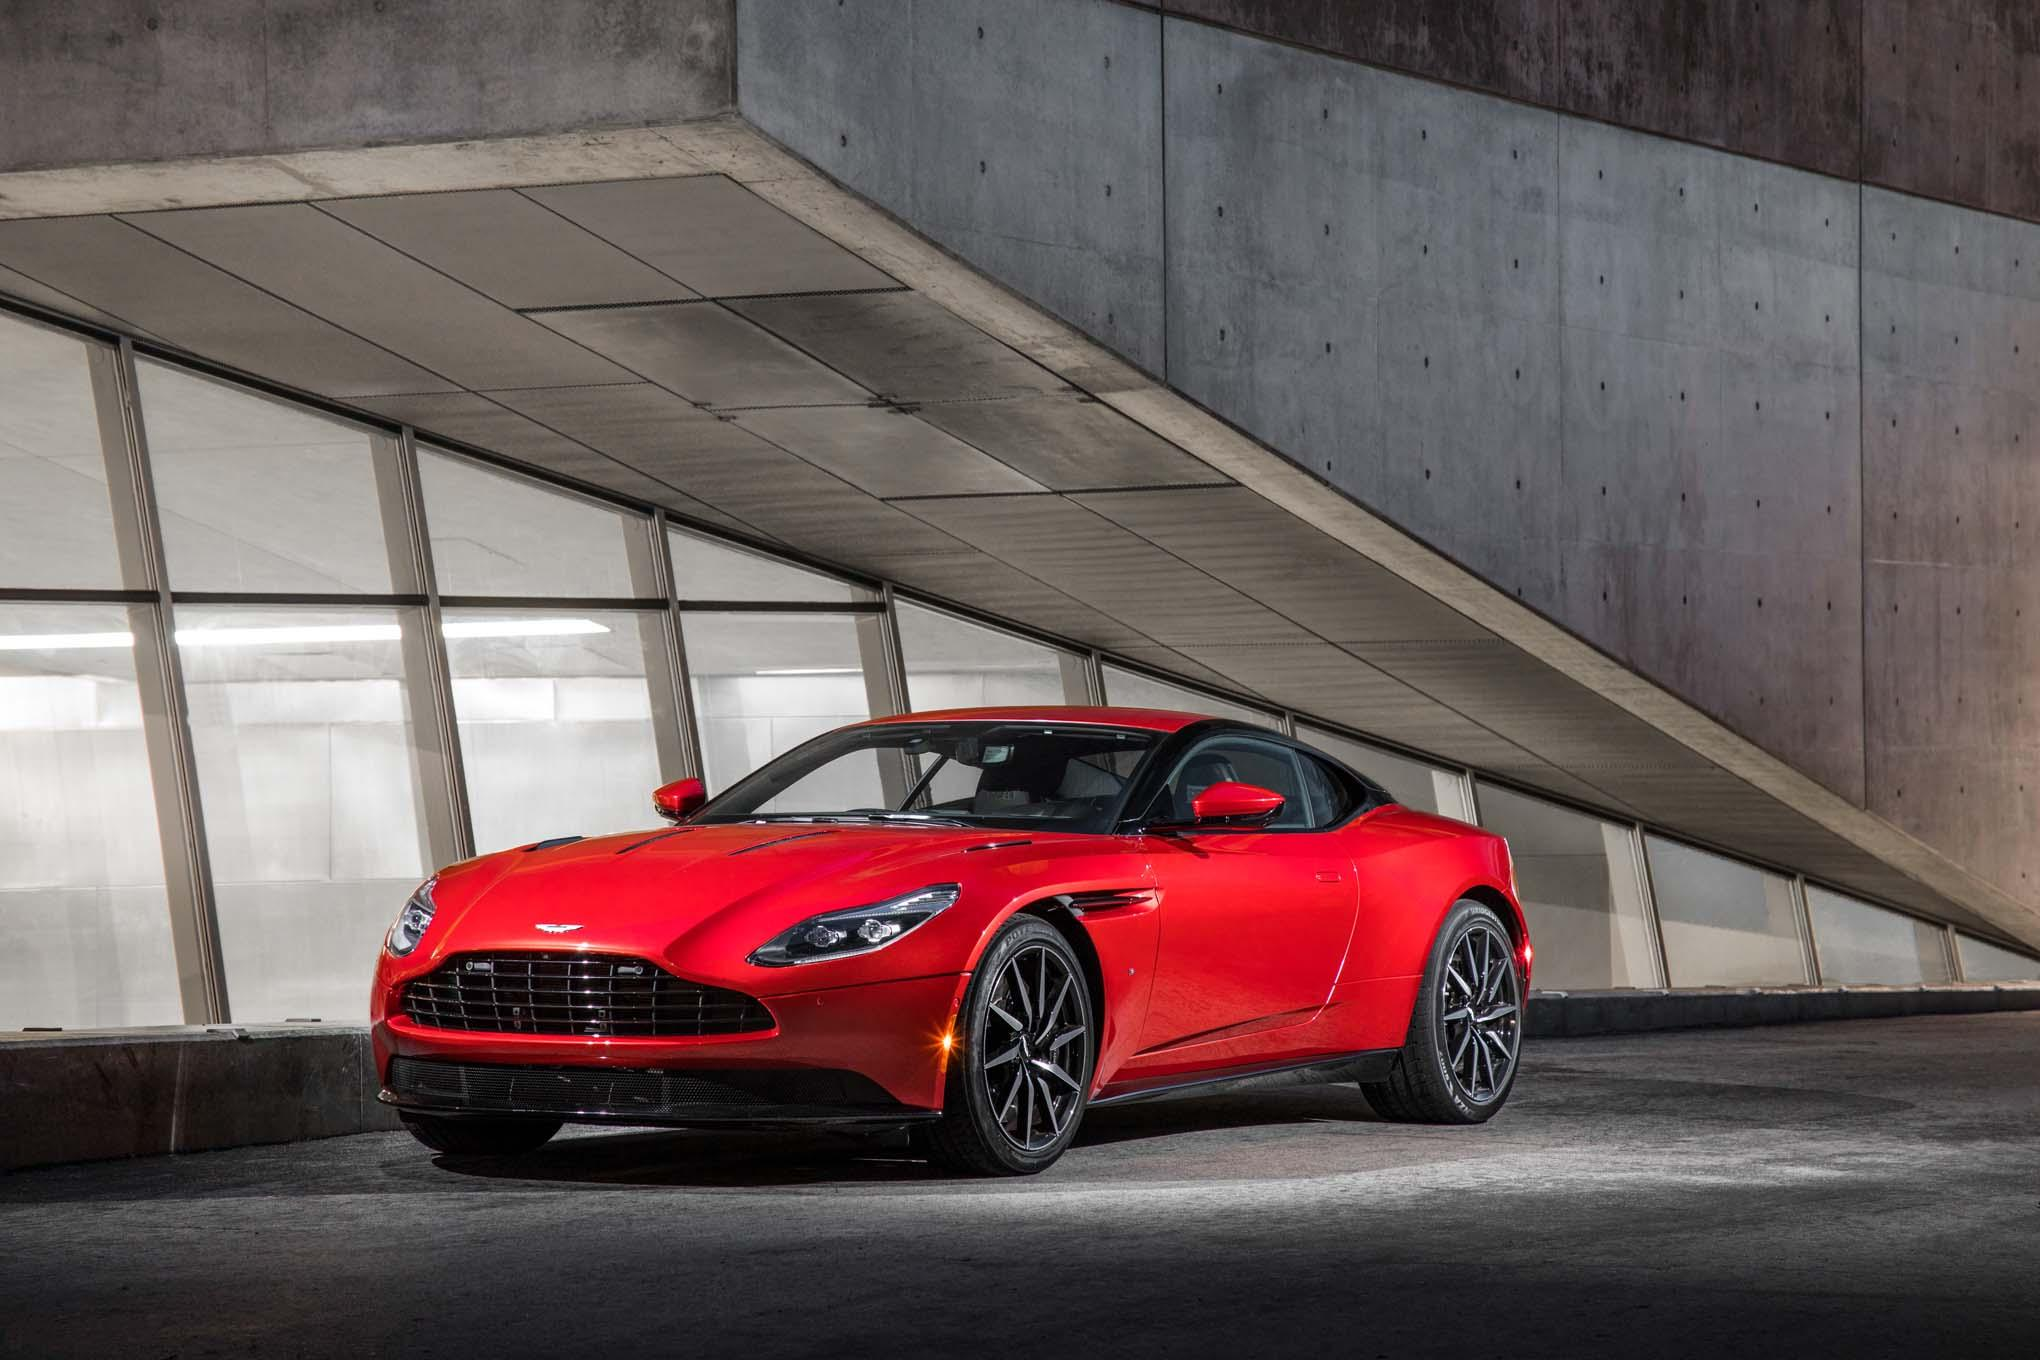 aston martin db11 acceleration times - accelerationtimes